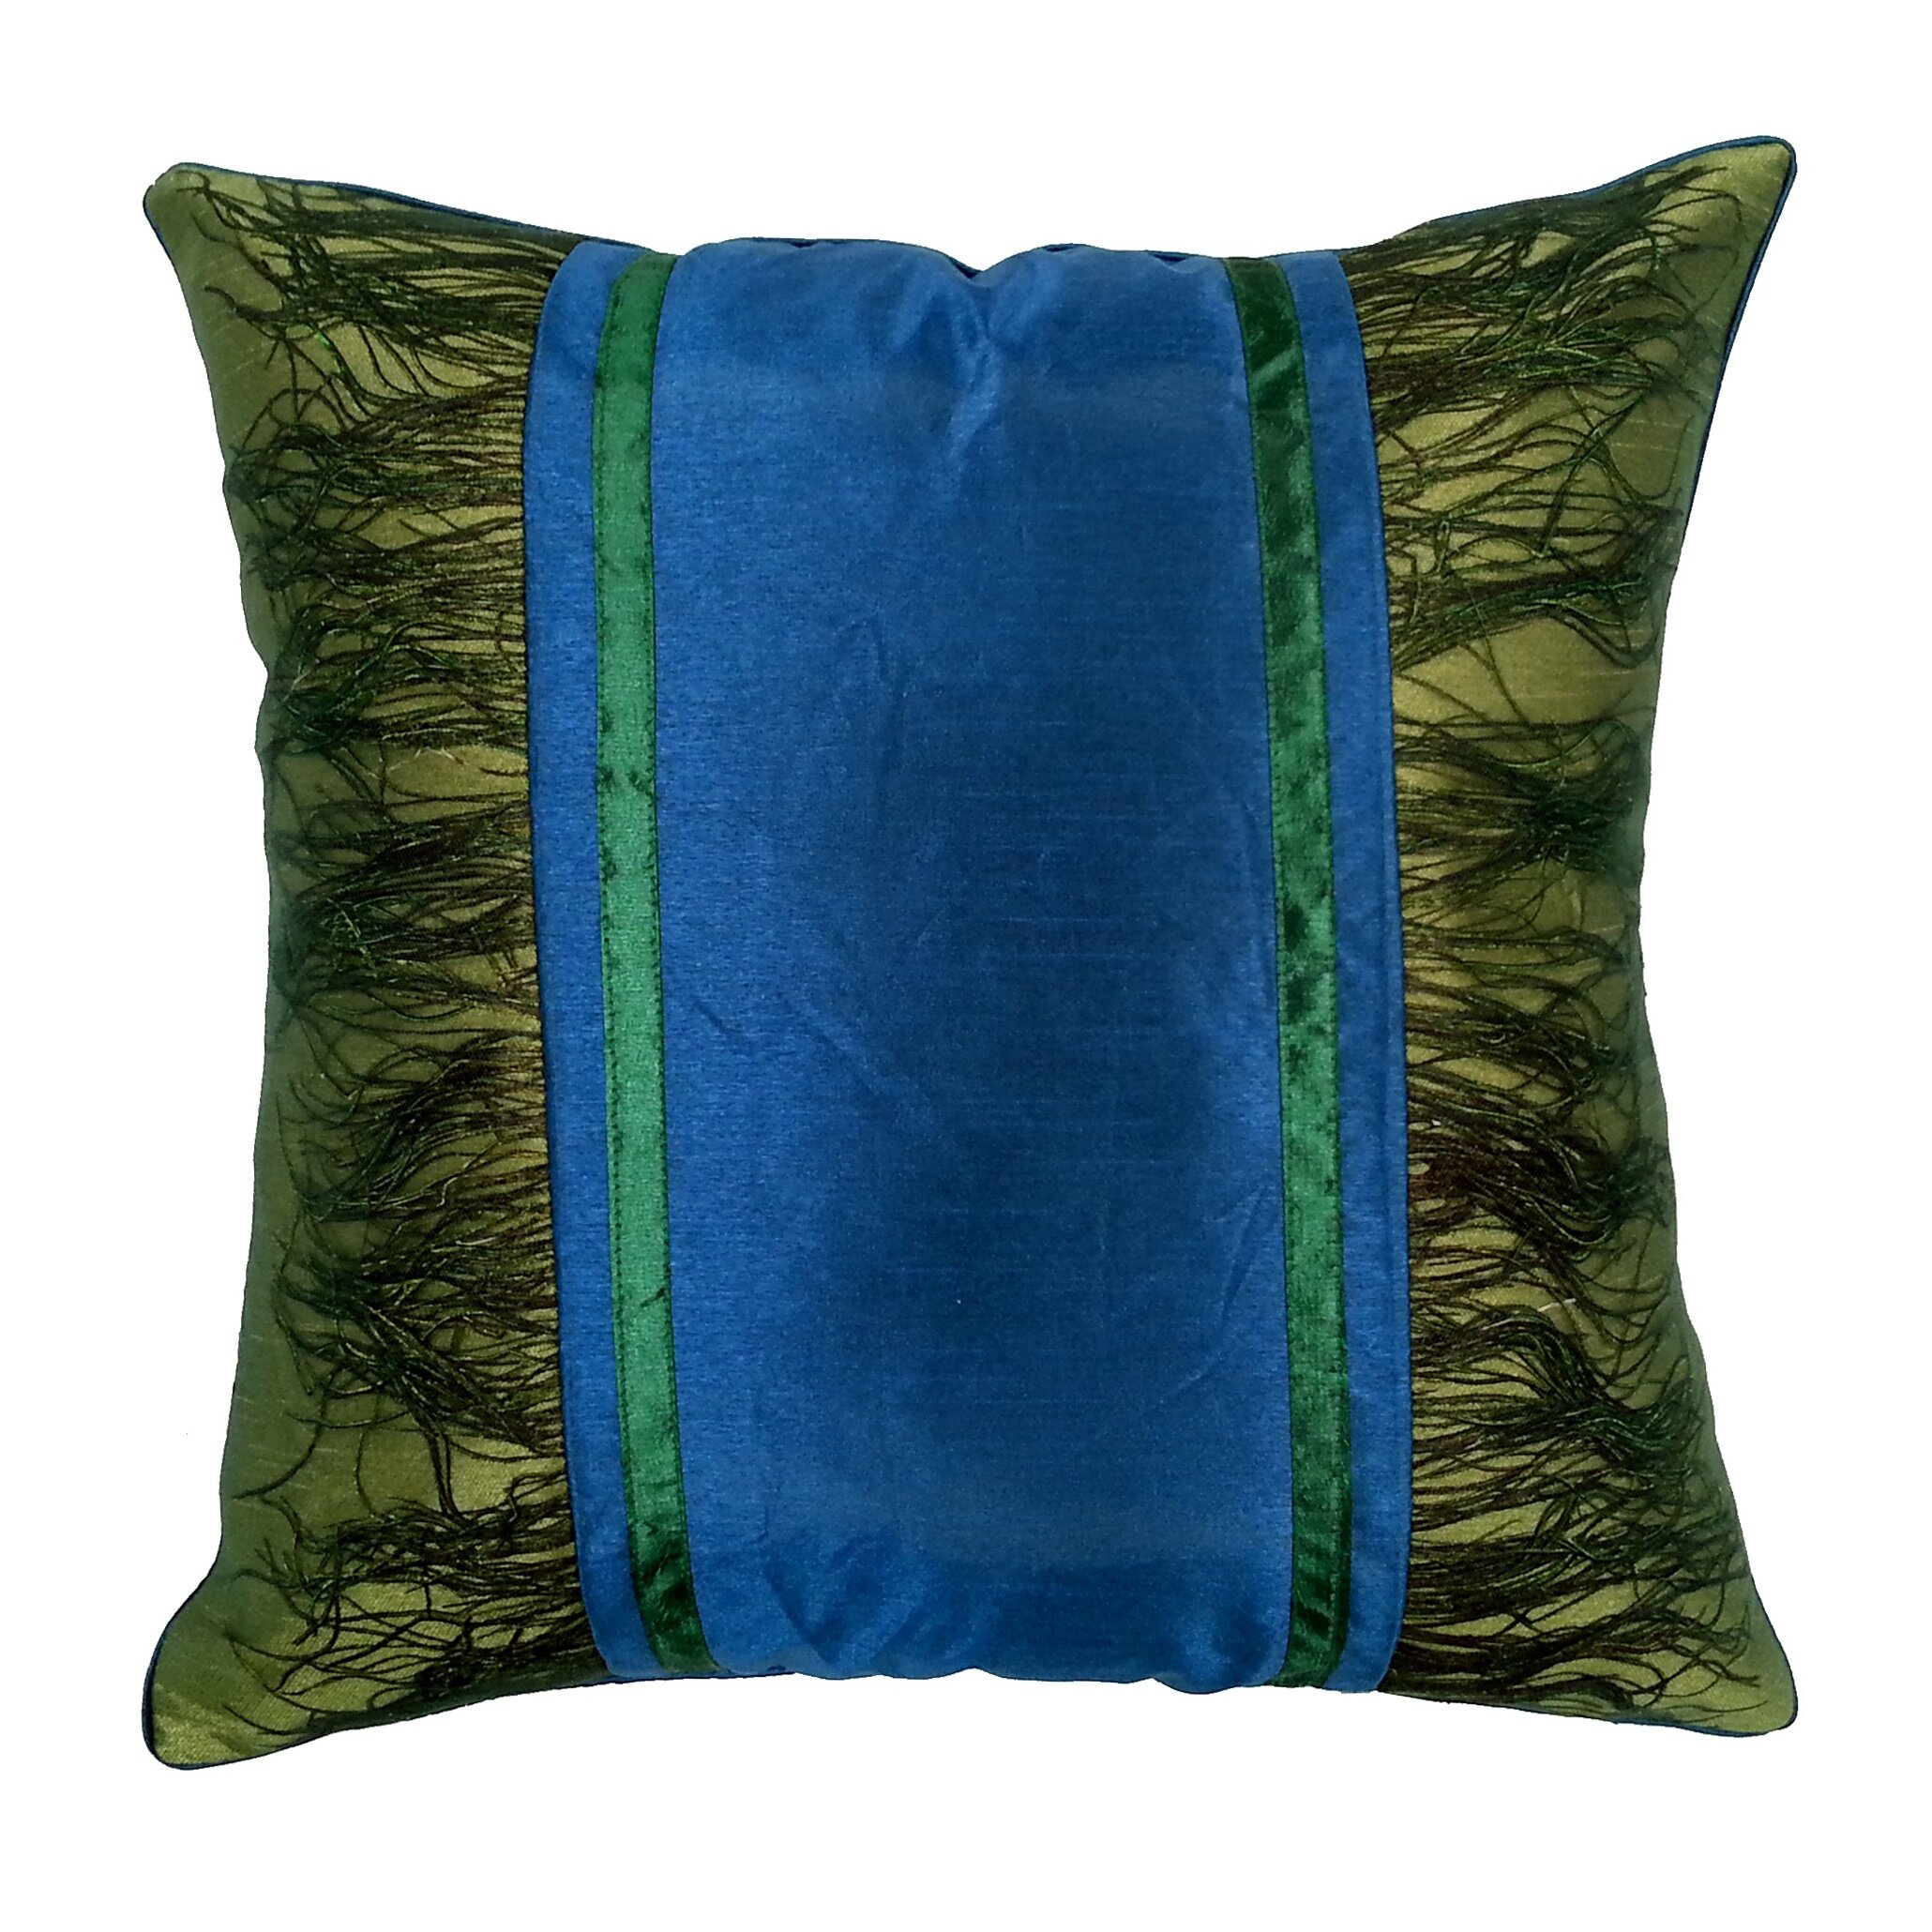 Edie Inc. Peacock Plume Throw Pillow Wayfair